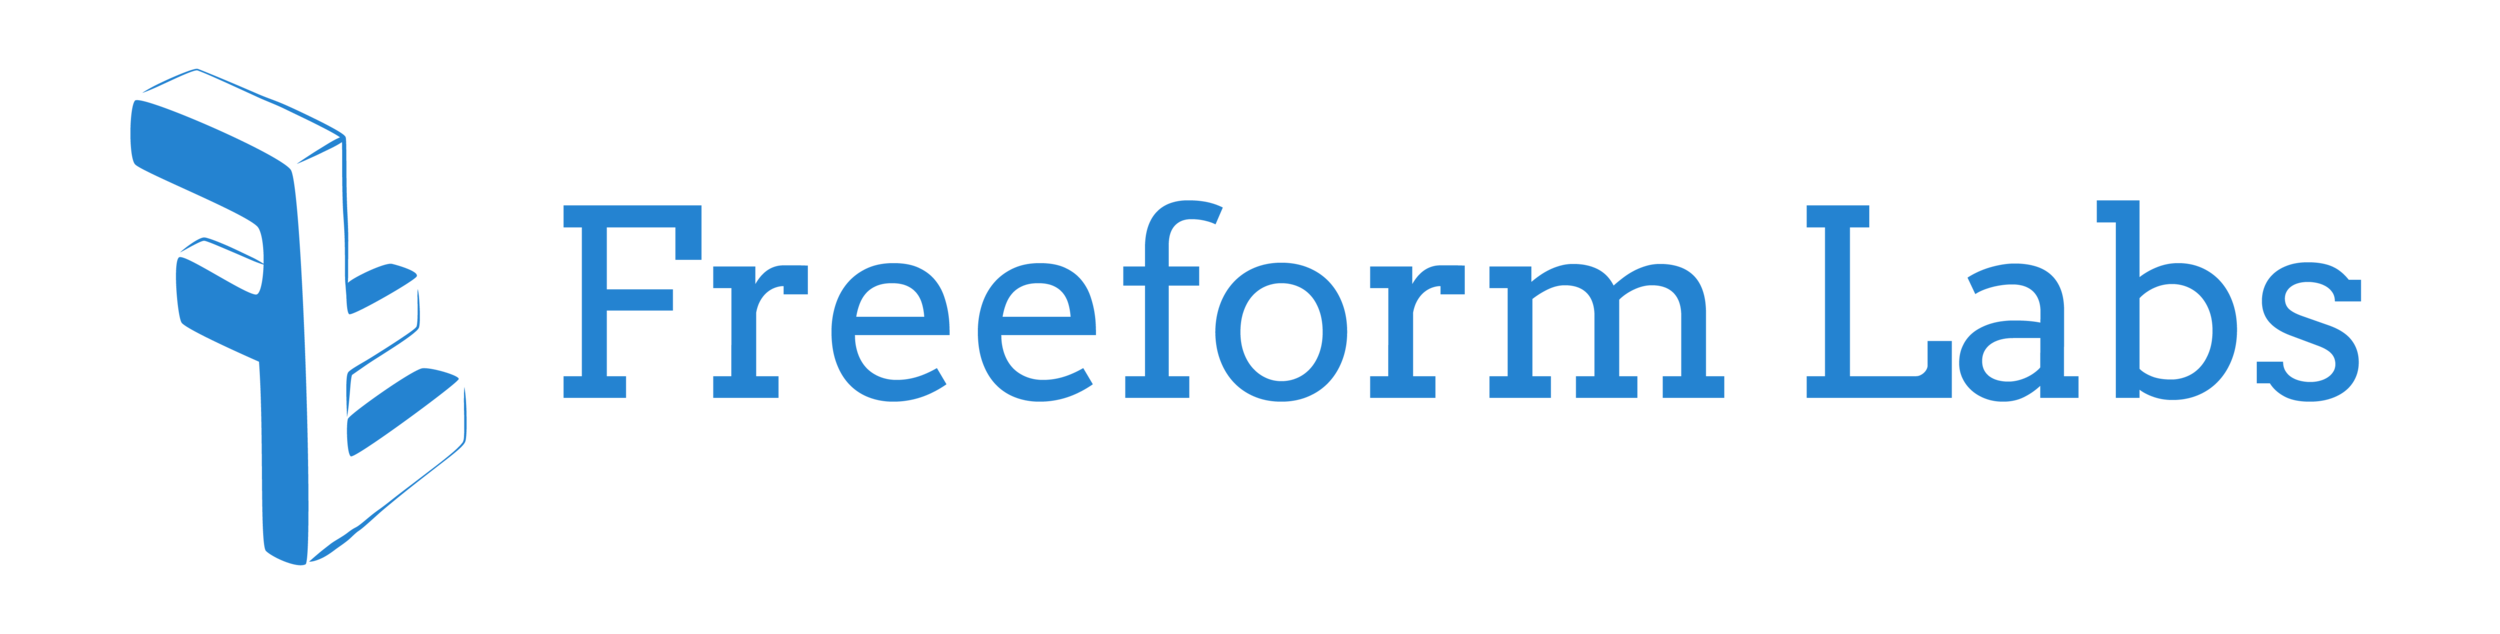 Freeform-Labs-email-banner-01.png